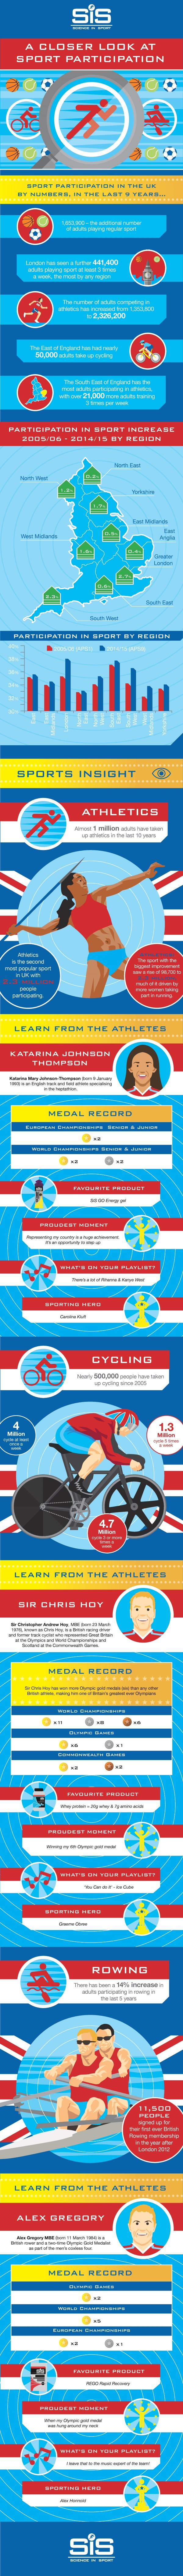 sports participation infographic